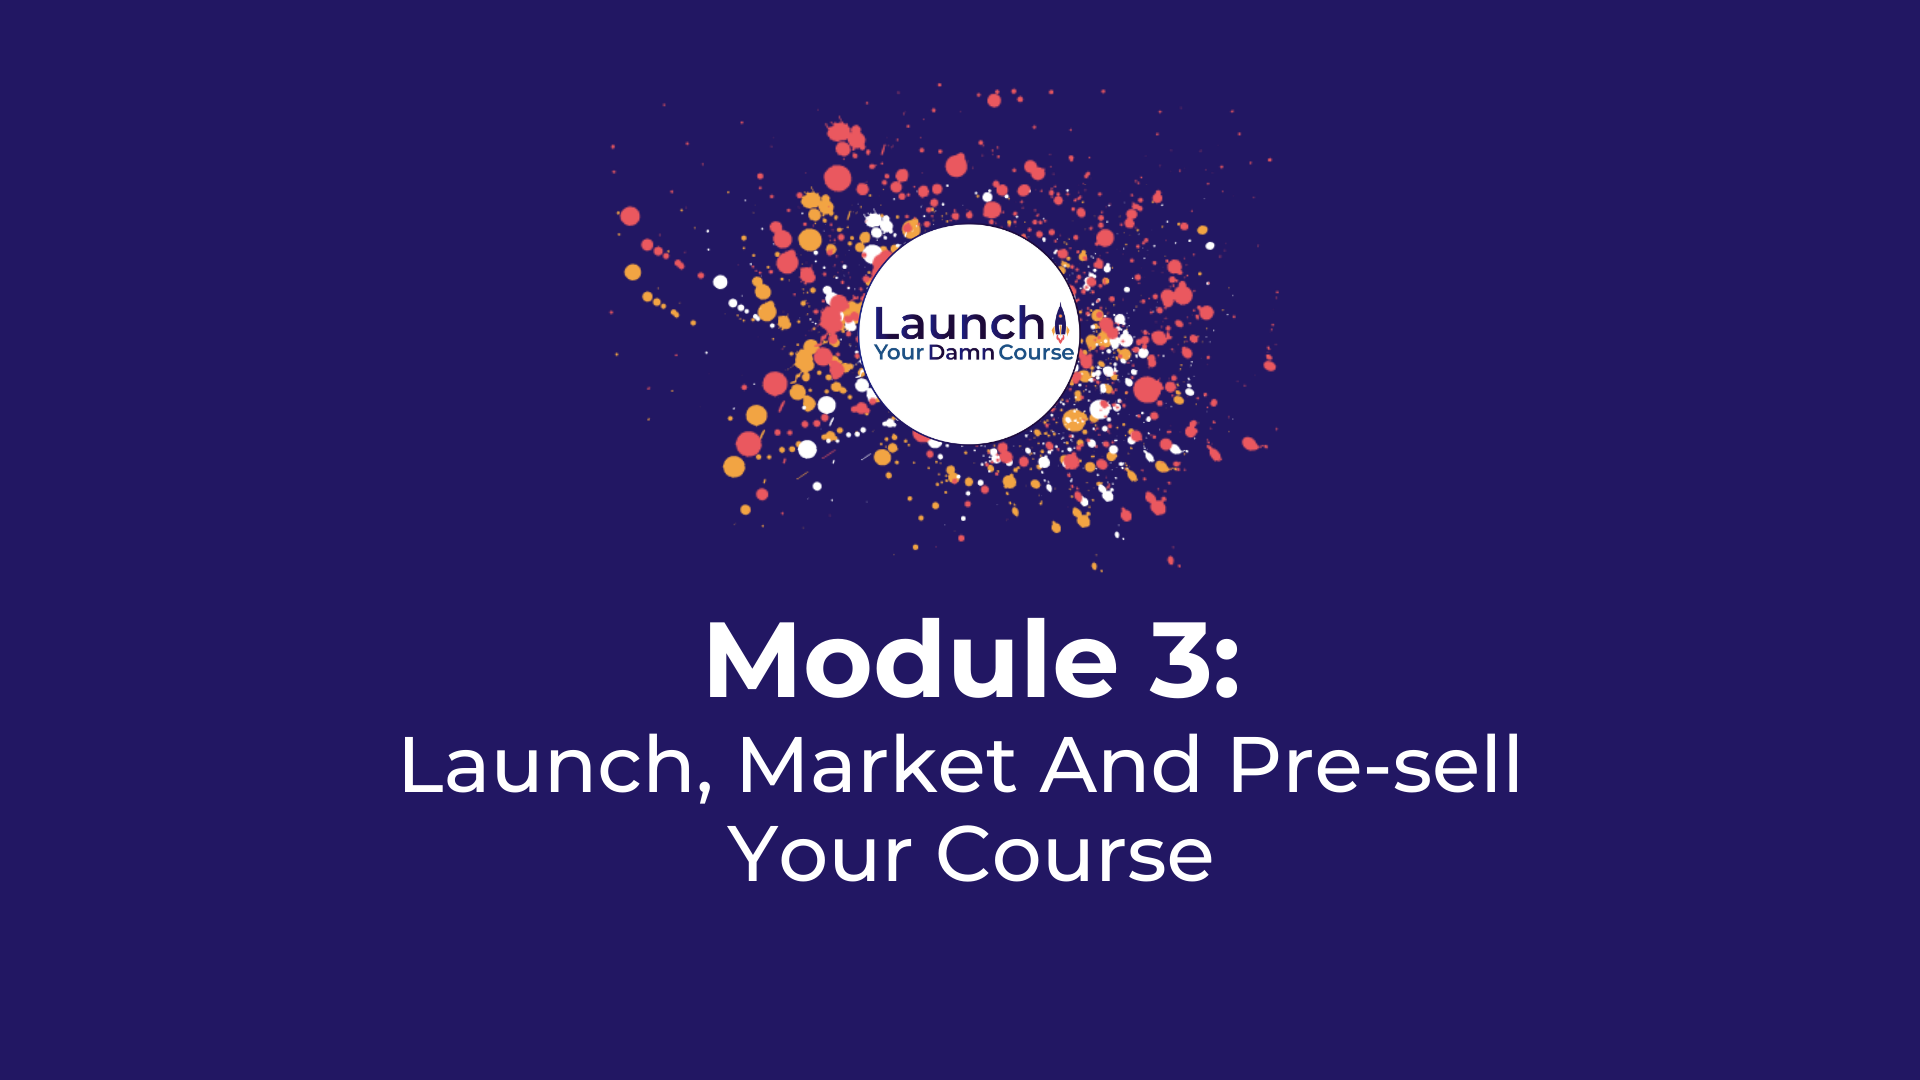 Module 3 - Launch, Market And Pre-sell Your Course